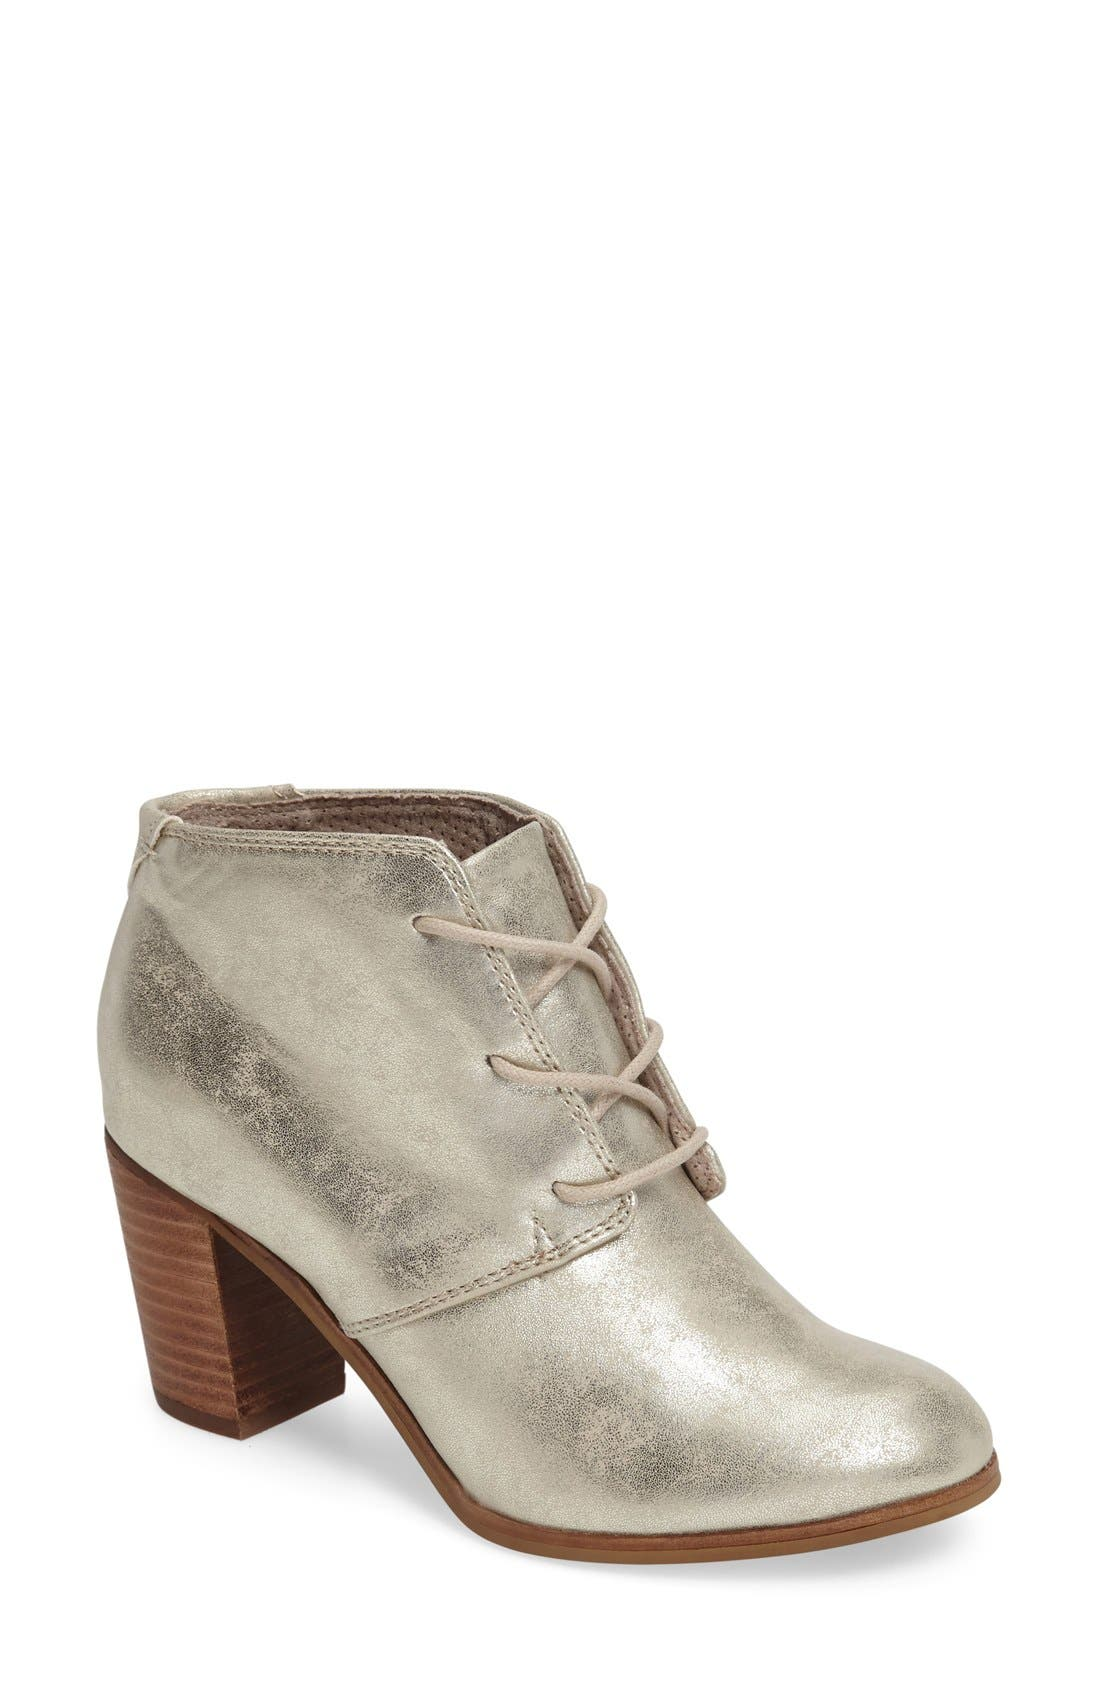 Alternate Image 1 Selected - TOMS Lunata Lace-Up Bootie (Women)